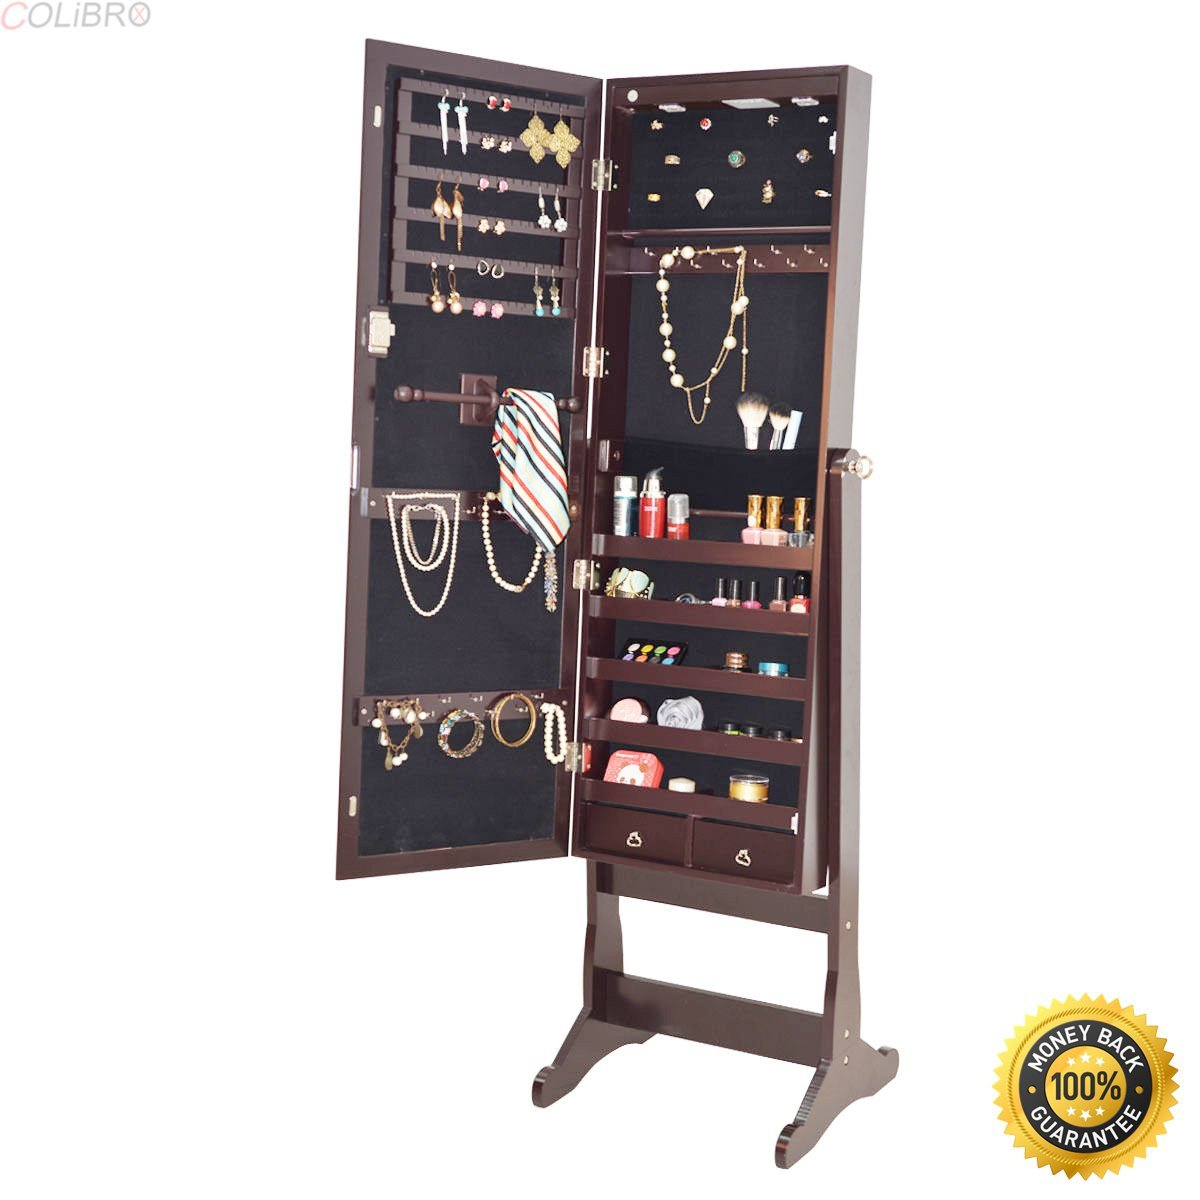 COLIBROX--Mirrored Jewelry Cabinet Armoire Organizer Storage w/ LED Lights Christmas Gift,locking jewelry armoire,locking jewelry armoire floor standing,jewelry box for necklaces,jewelry gift box